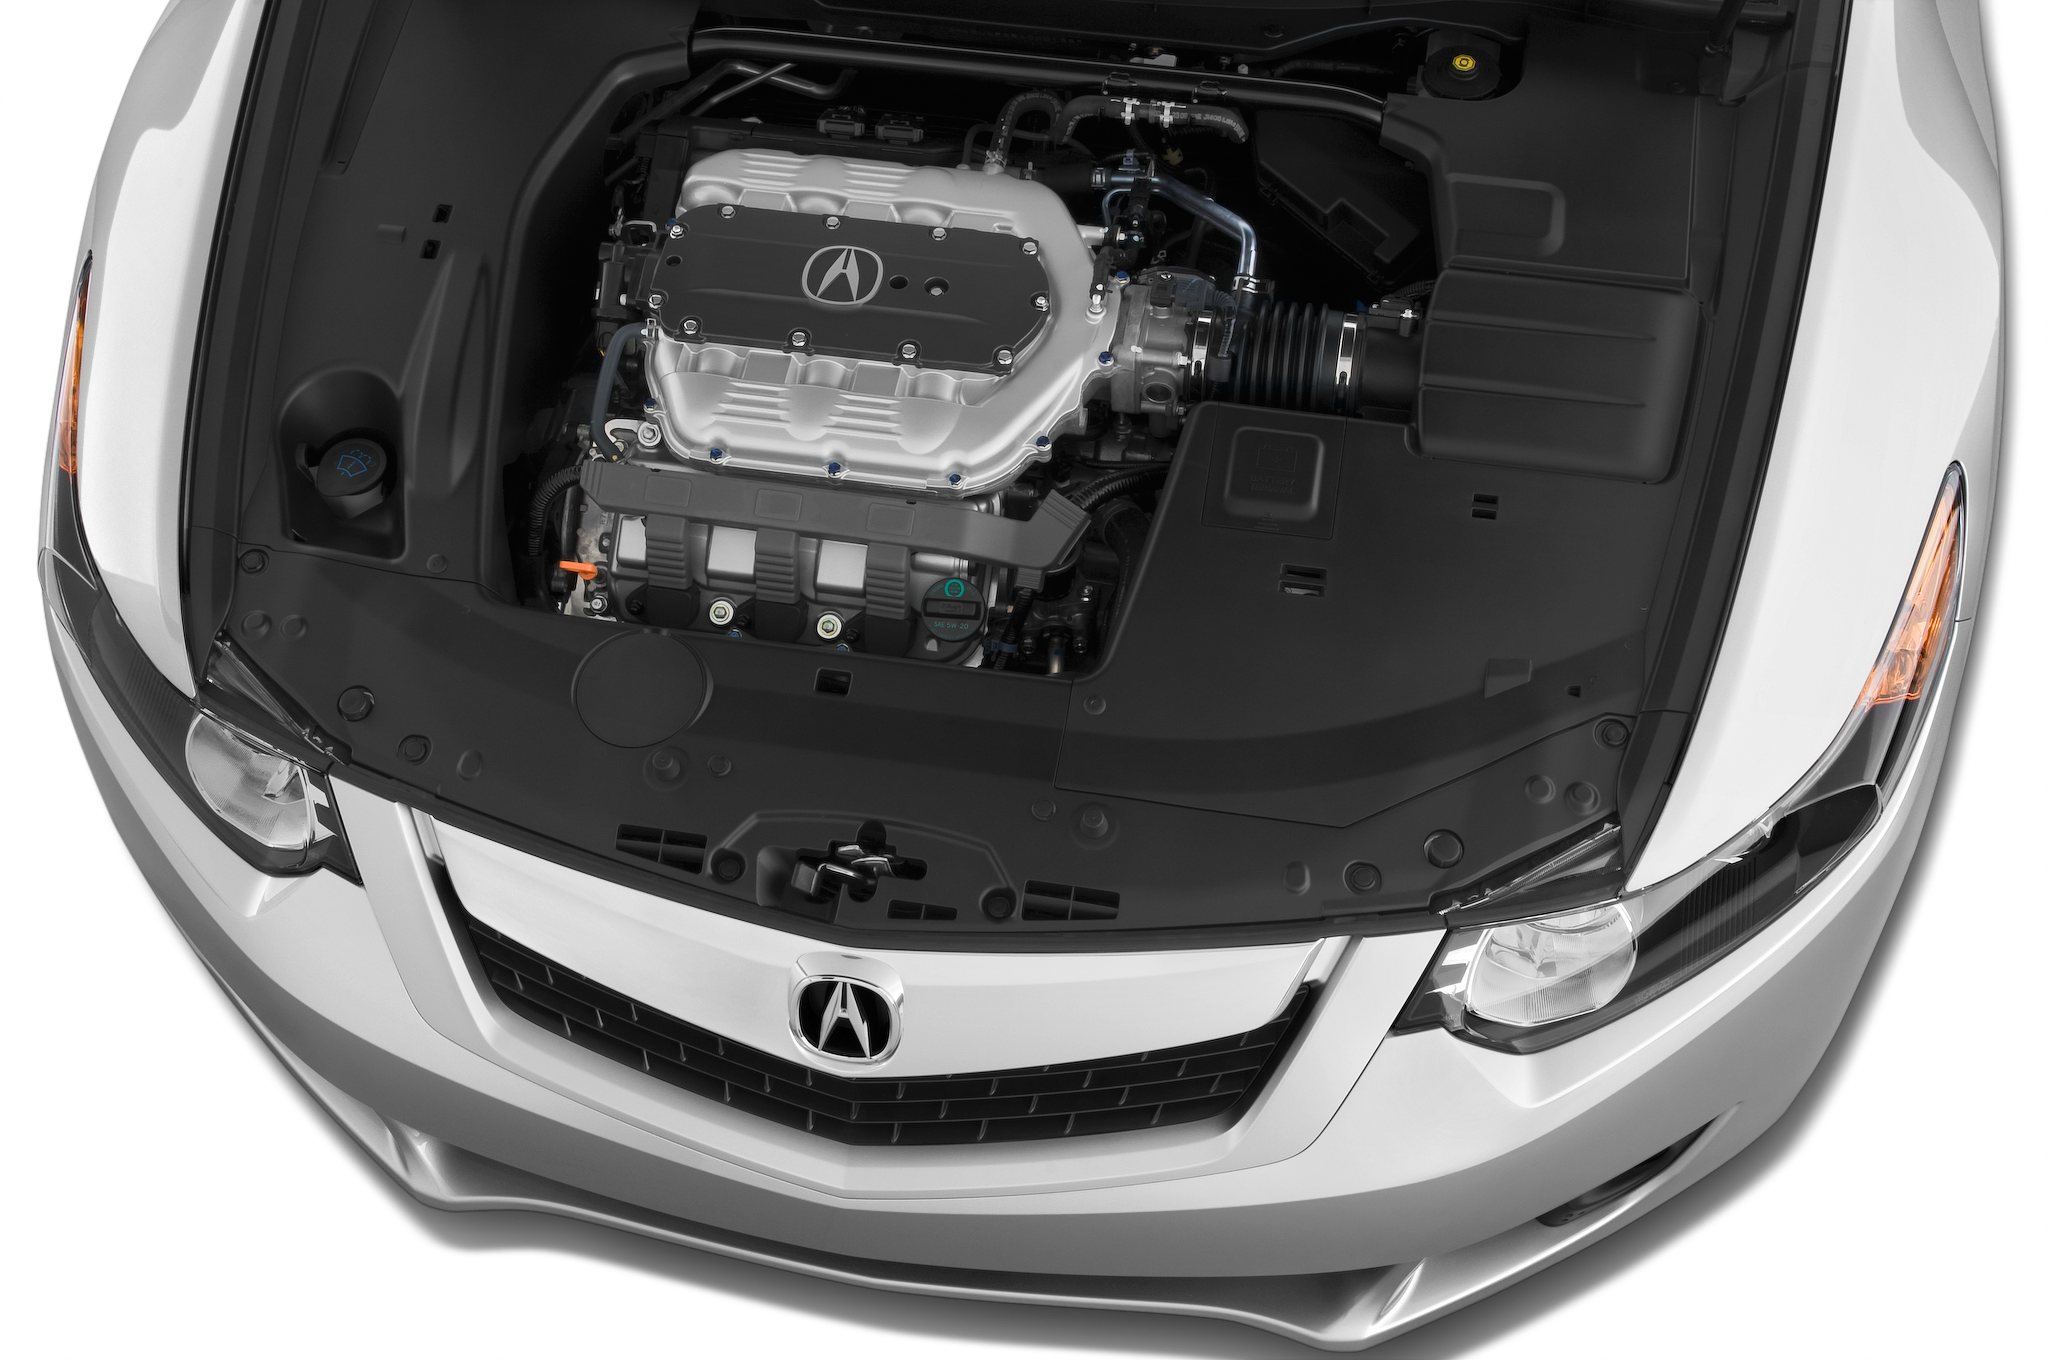 Acura TSX V Acura Luxury Sport Sedan Review Automobile - Acura tsx engine